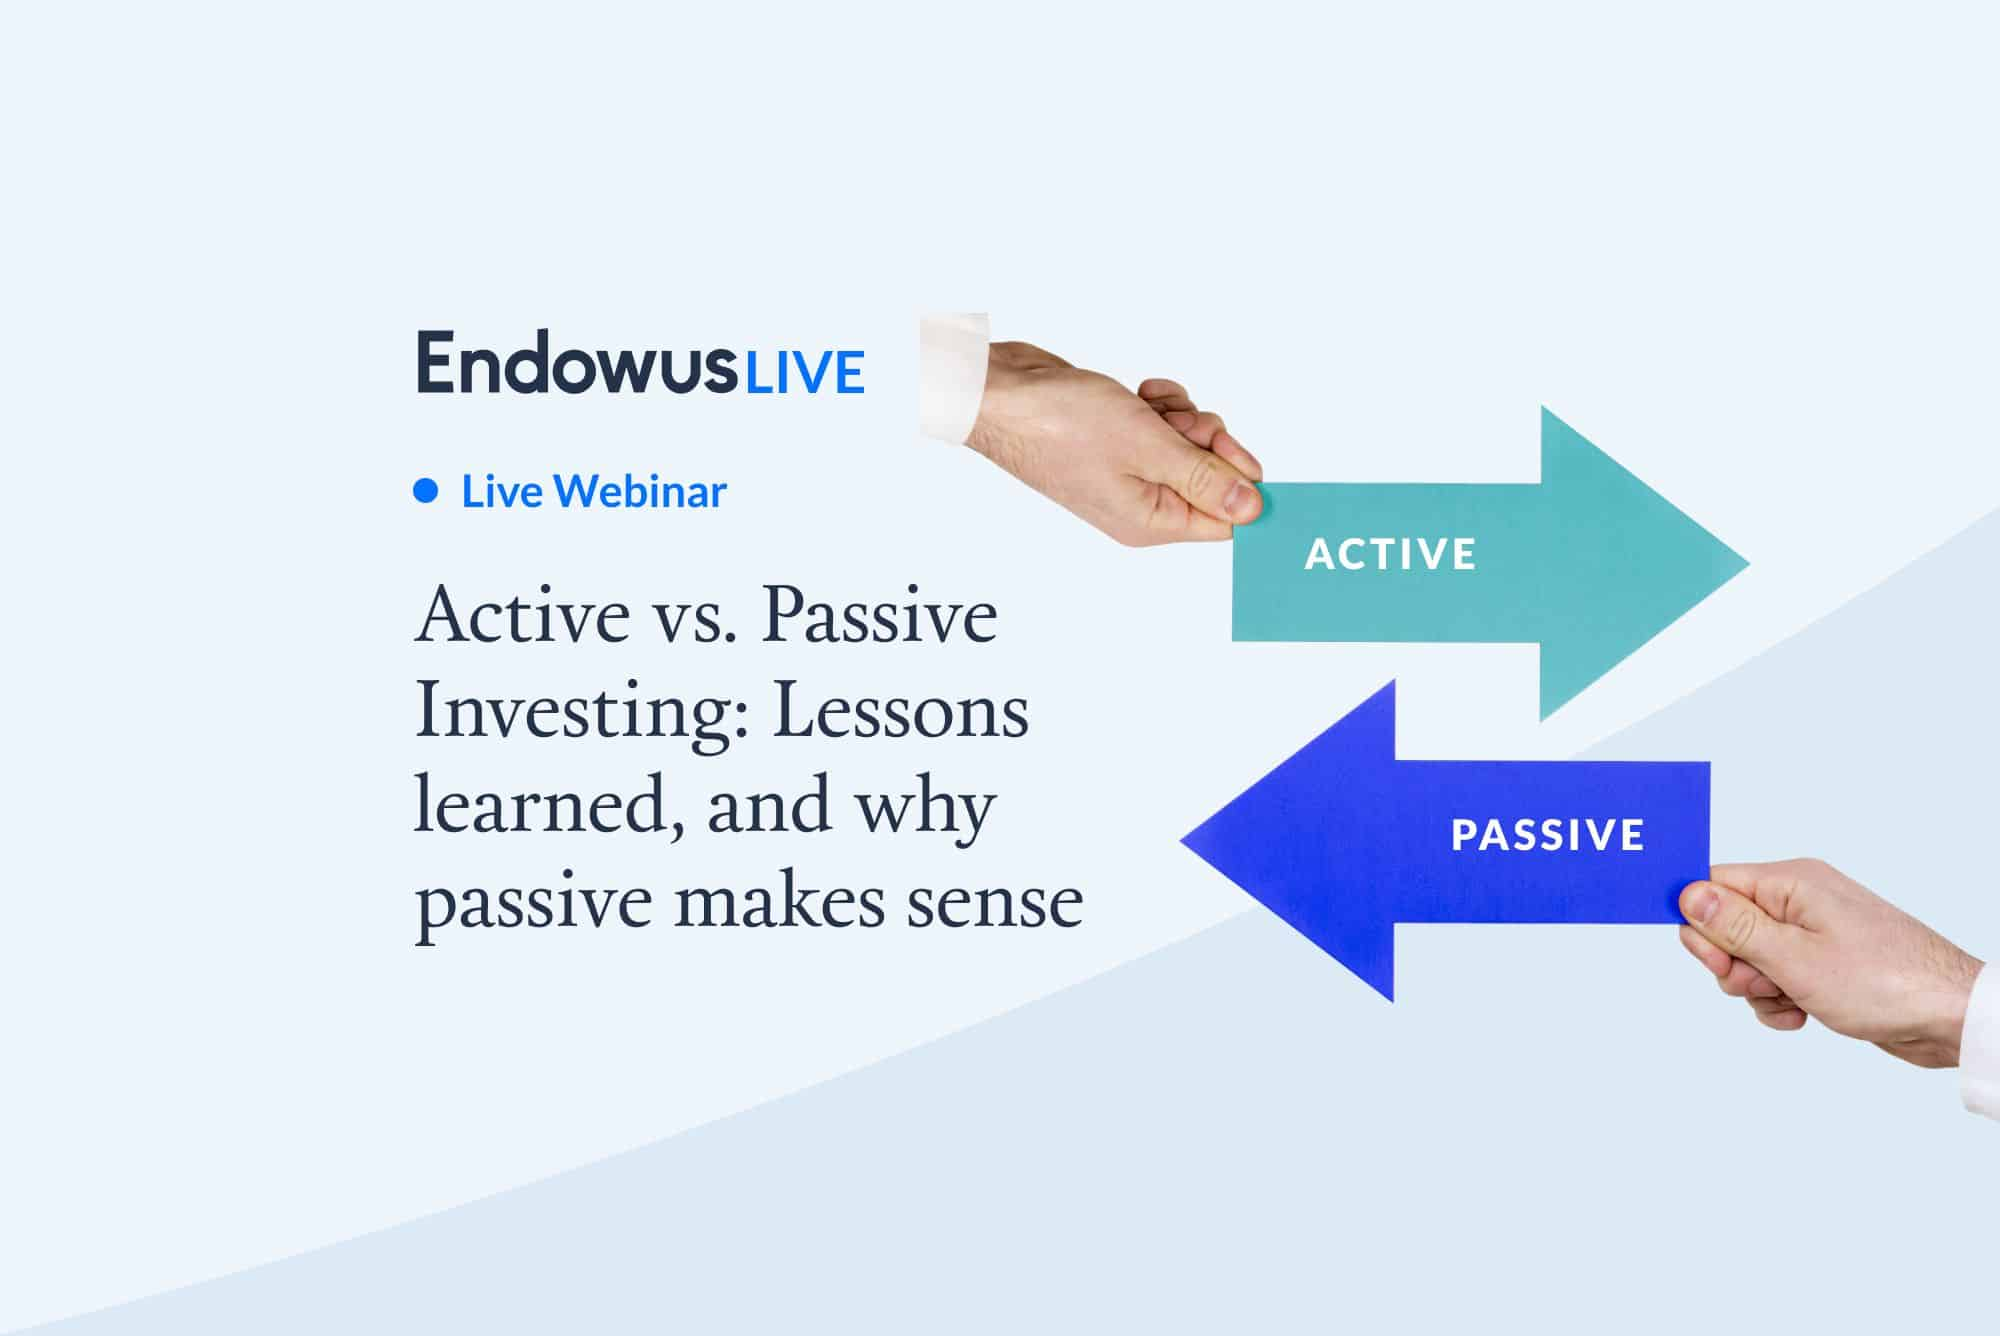 Webinar: Active vs Passive Investing: Lessons Learned, and Why Passive Makes Sense